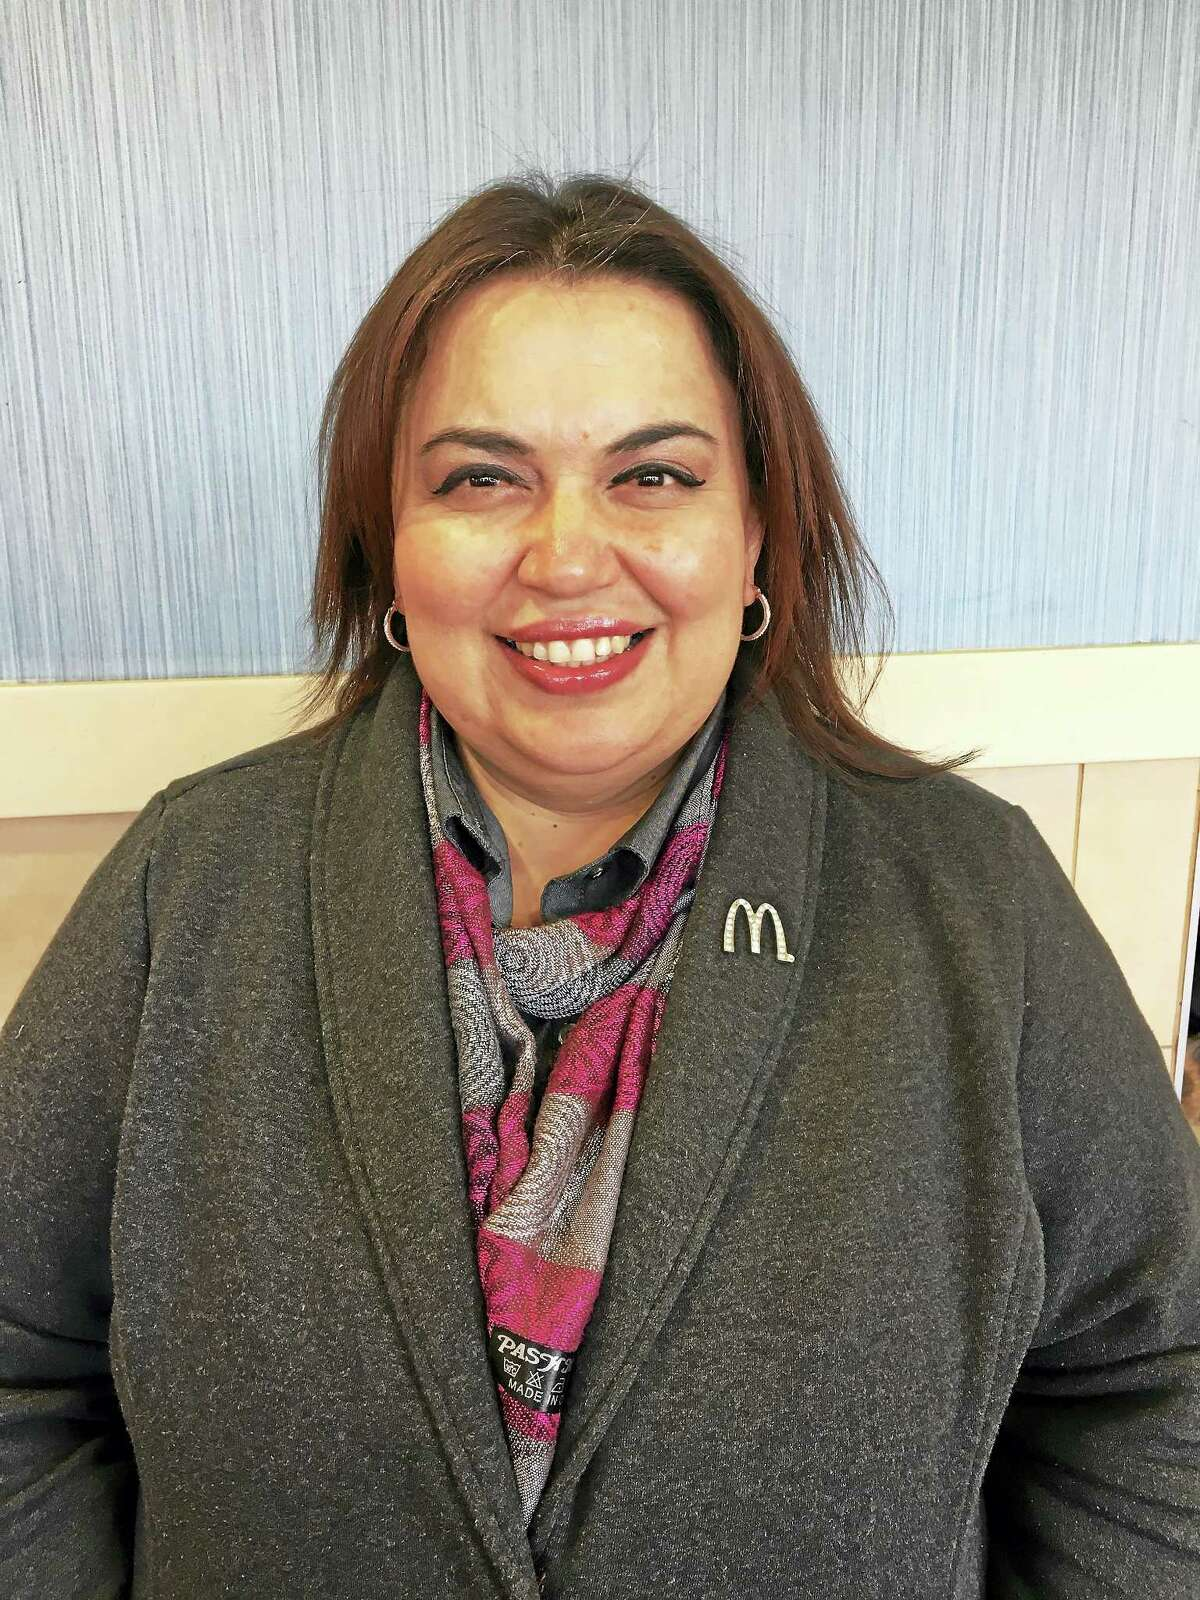 Jessica Castillo, Manger of the McDonald's restaurant in North Branford, has won a Ray Kroc Award, an accolade that recognizes the top performing McDonald's restaurant mangers globally. Castillo was one of 340 McDonald's Restaurant Mangers around the world (representing the top one percent of restaurant managers) to receive the honor, which includes a cash prize and trophy. Castillo, who lives in West Haven and has been working for McDonald's for 10 years, will be awarded on April 13, 2016 at the Ray Kroc Awards Gala in Orlando, Florida hosted by Steve Easterbrook, McDonald's President and Chief Executive Officer, and David Fairhurst, McDonald's Executive Vice President and Chief People Officer. Castillo is originally from Guatemala and first came to the United States in 2005. She began working at McDonald's as a crew member.